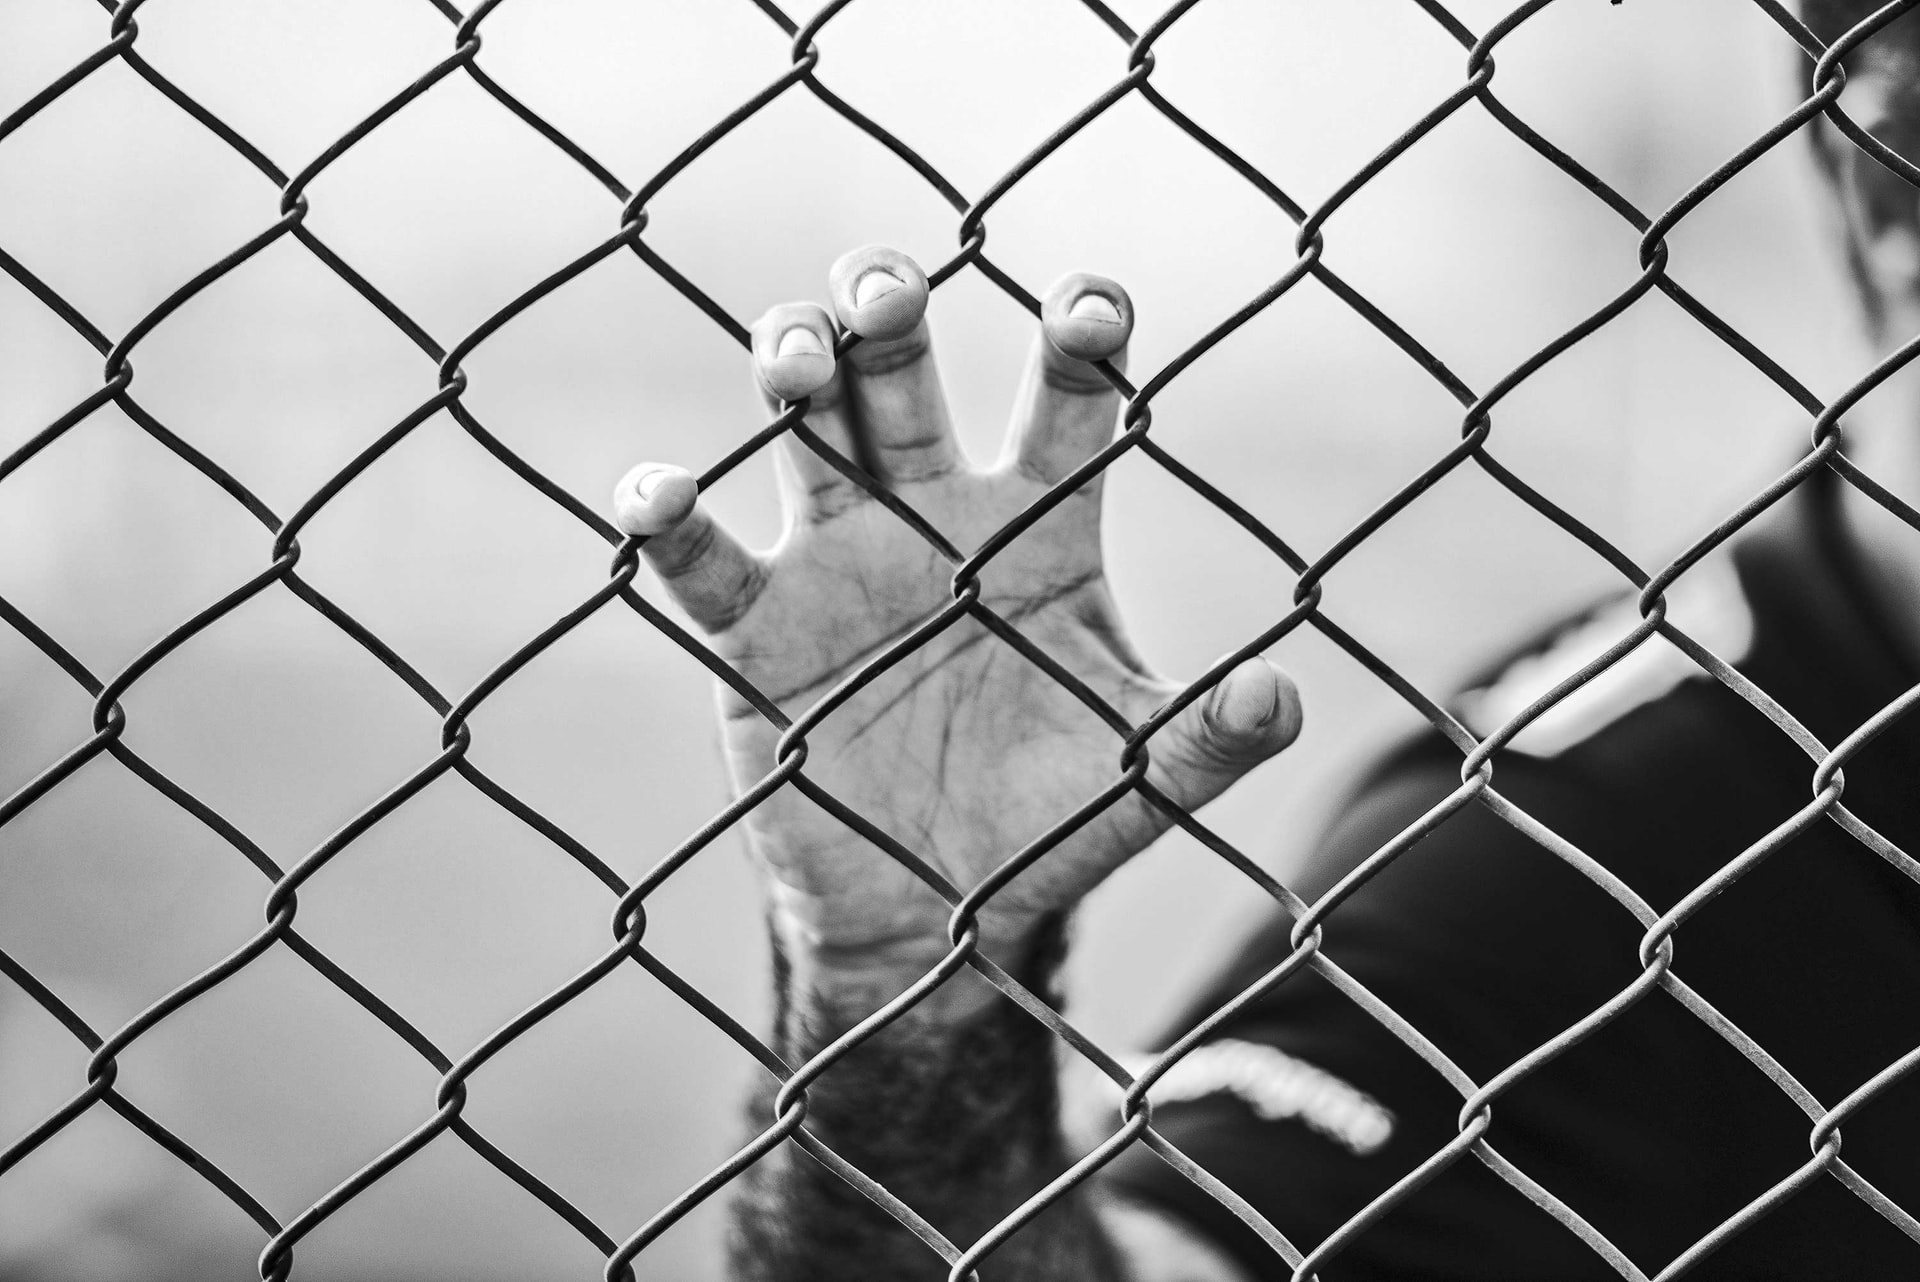 This is a black and white image of a hand gripping a chain link fence